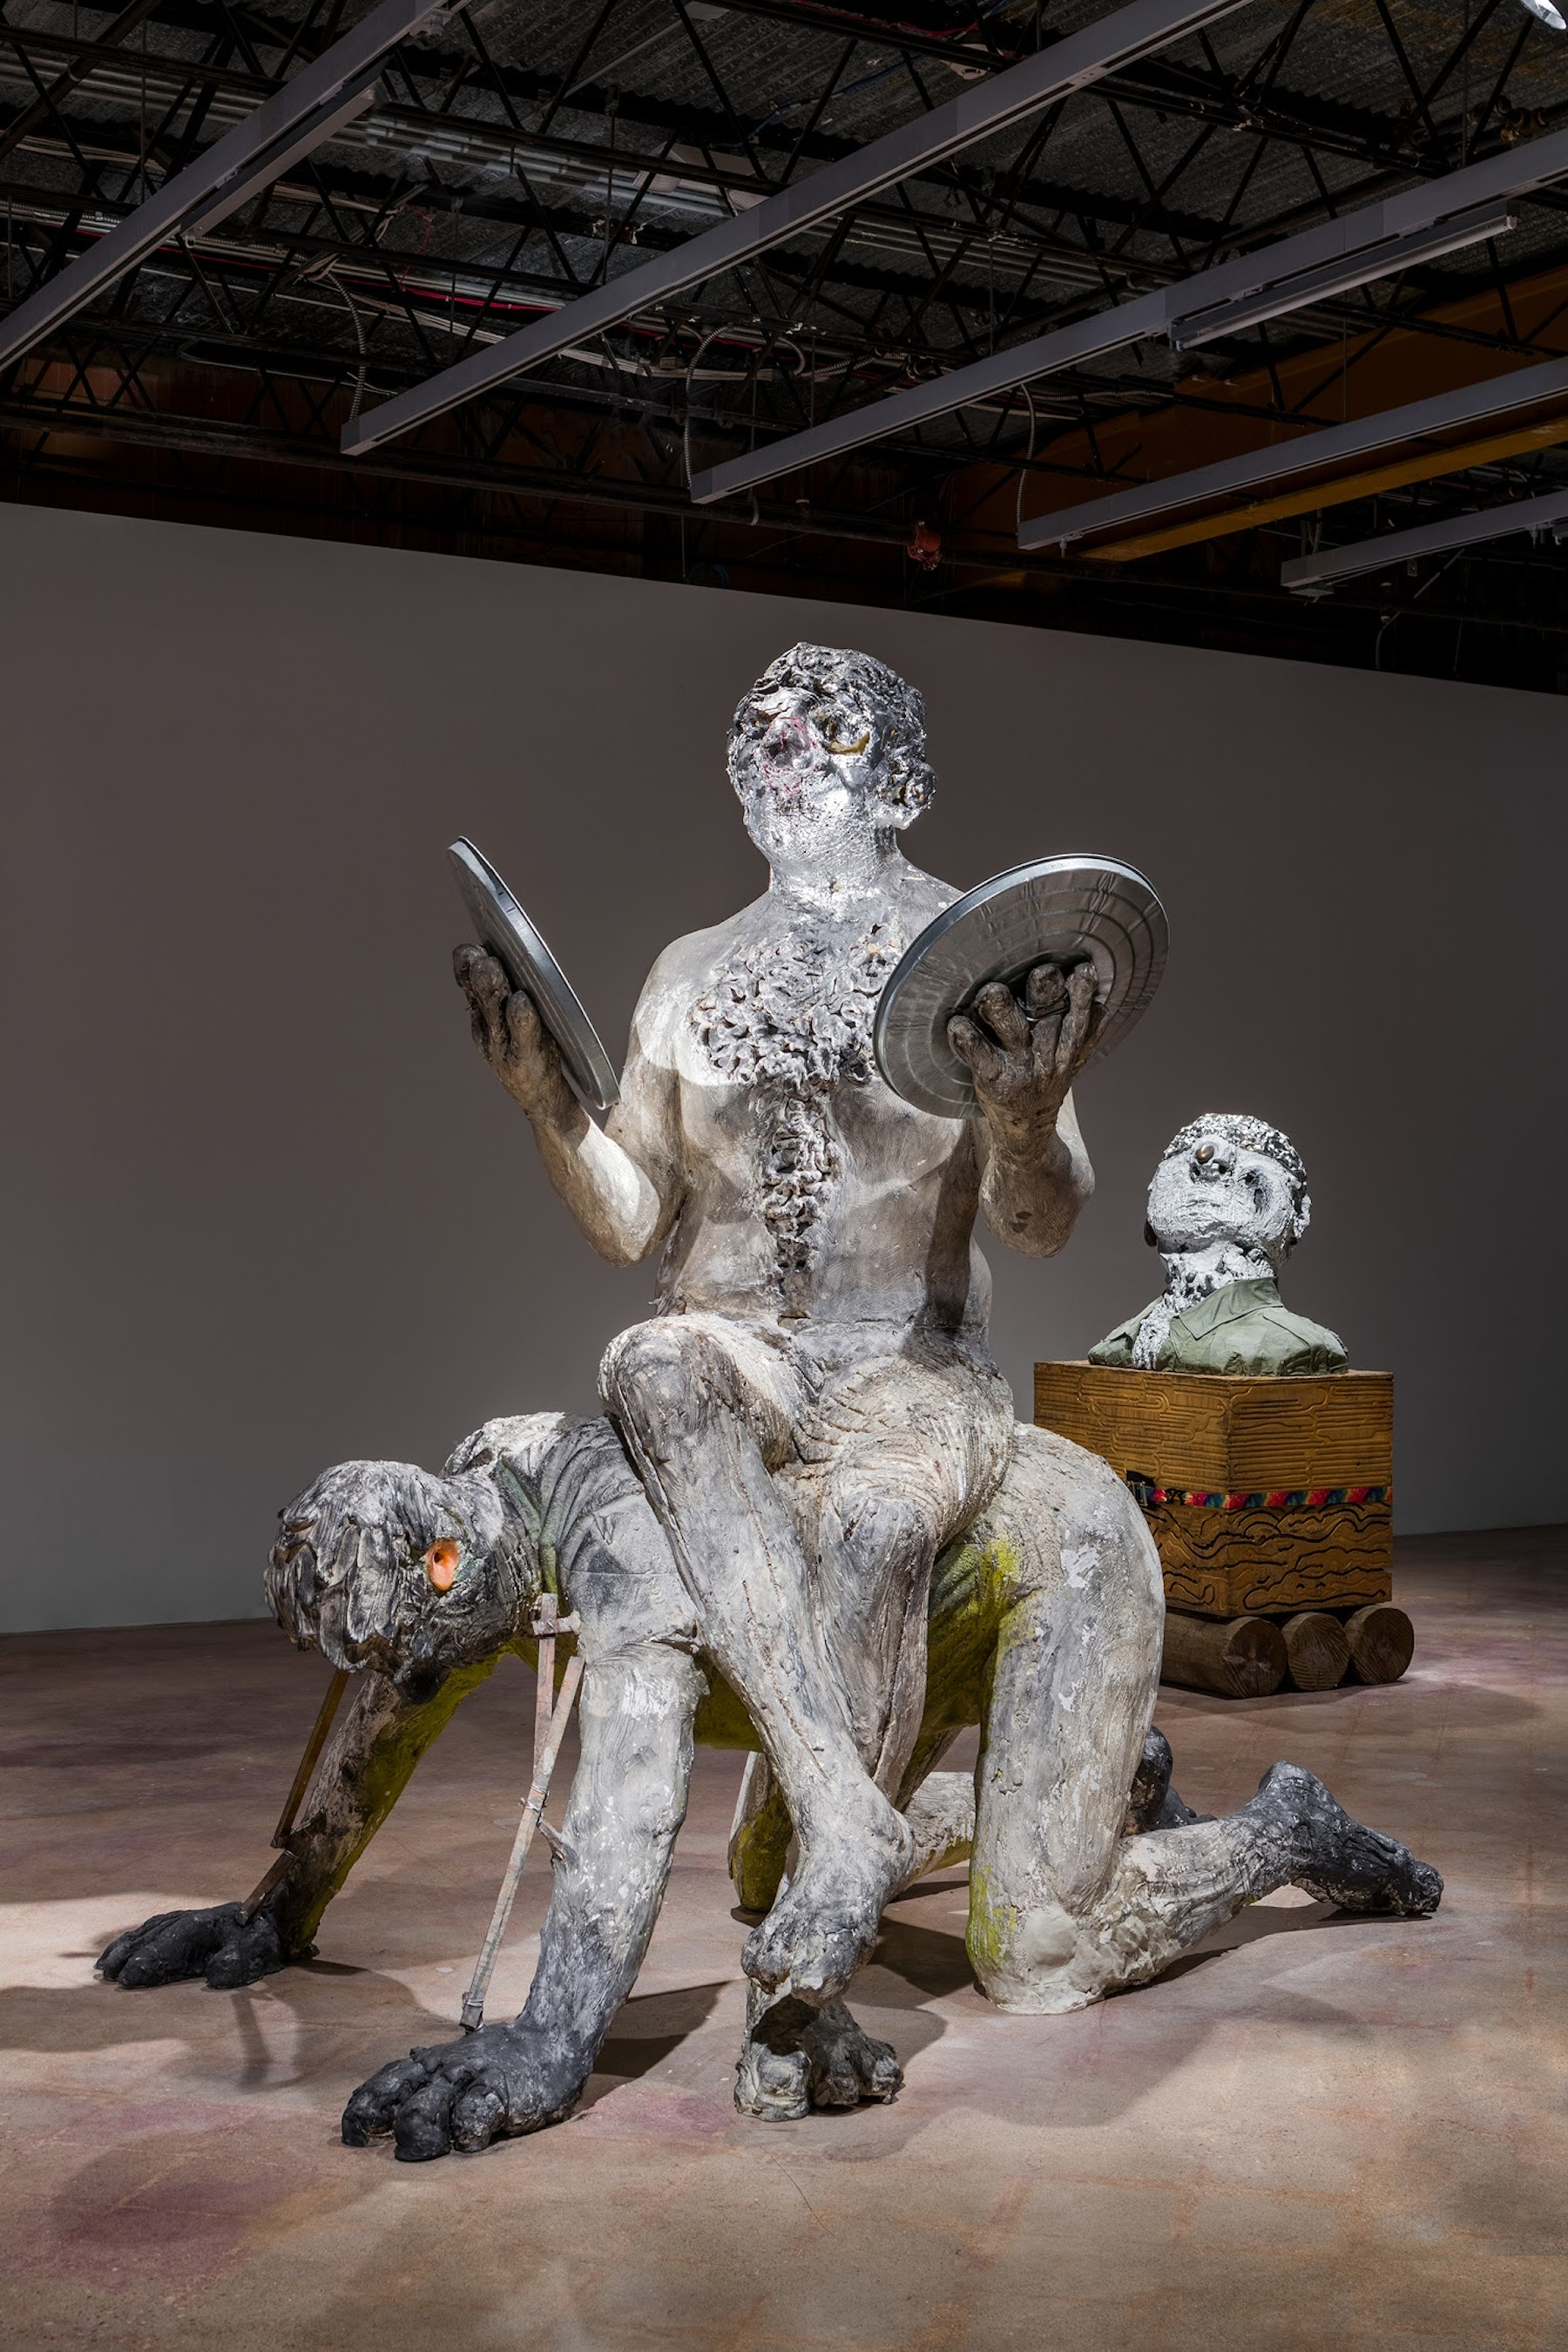 """Nicole Eisenman """"""""Man at the Center of Men,"""" plaster version,"""" 2019 Plaster, foam, fiberglass, epoxy resin, graphite, trashcan lids, mirrors, silver leaf, wood, and paint 97 x 100 x 64"""" [HxWxD] (246.38 x 254 x 162.56 cm) Approx. Inventory #EIS549 Courtesy of the artist and Vielmetter Los Angeles"""